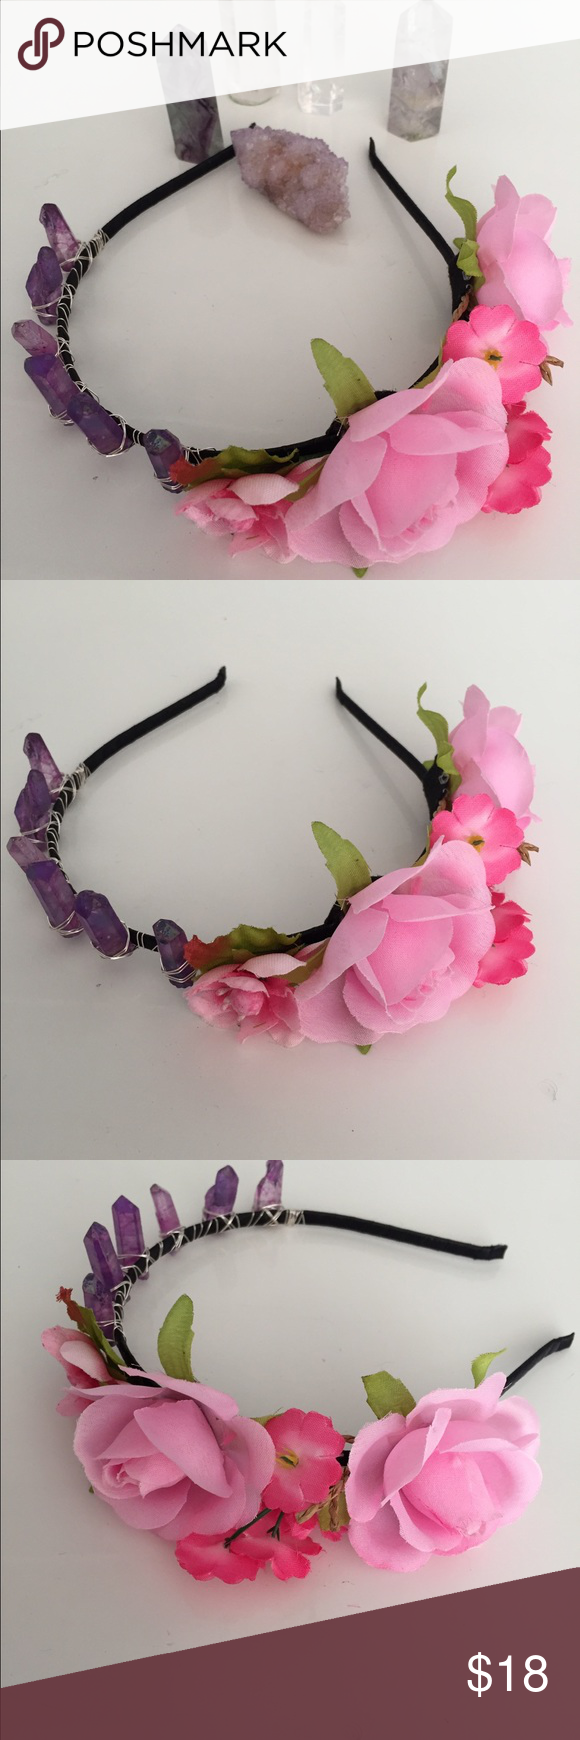 Perfect Flower Crown Handmade New Gemstone Flower Crown The Stone Is